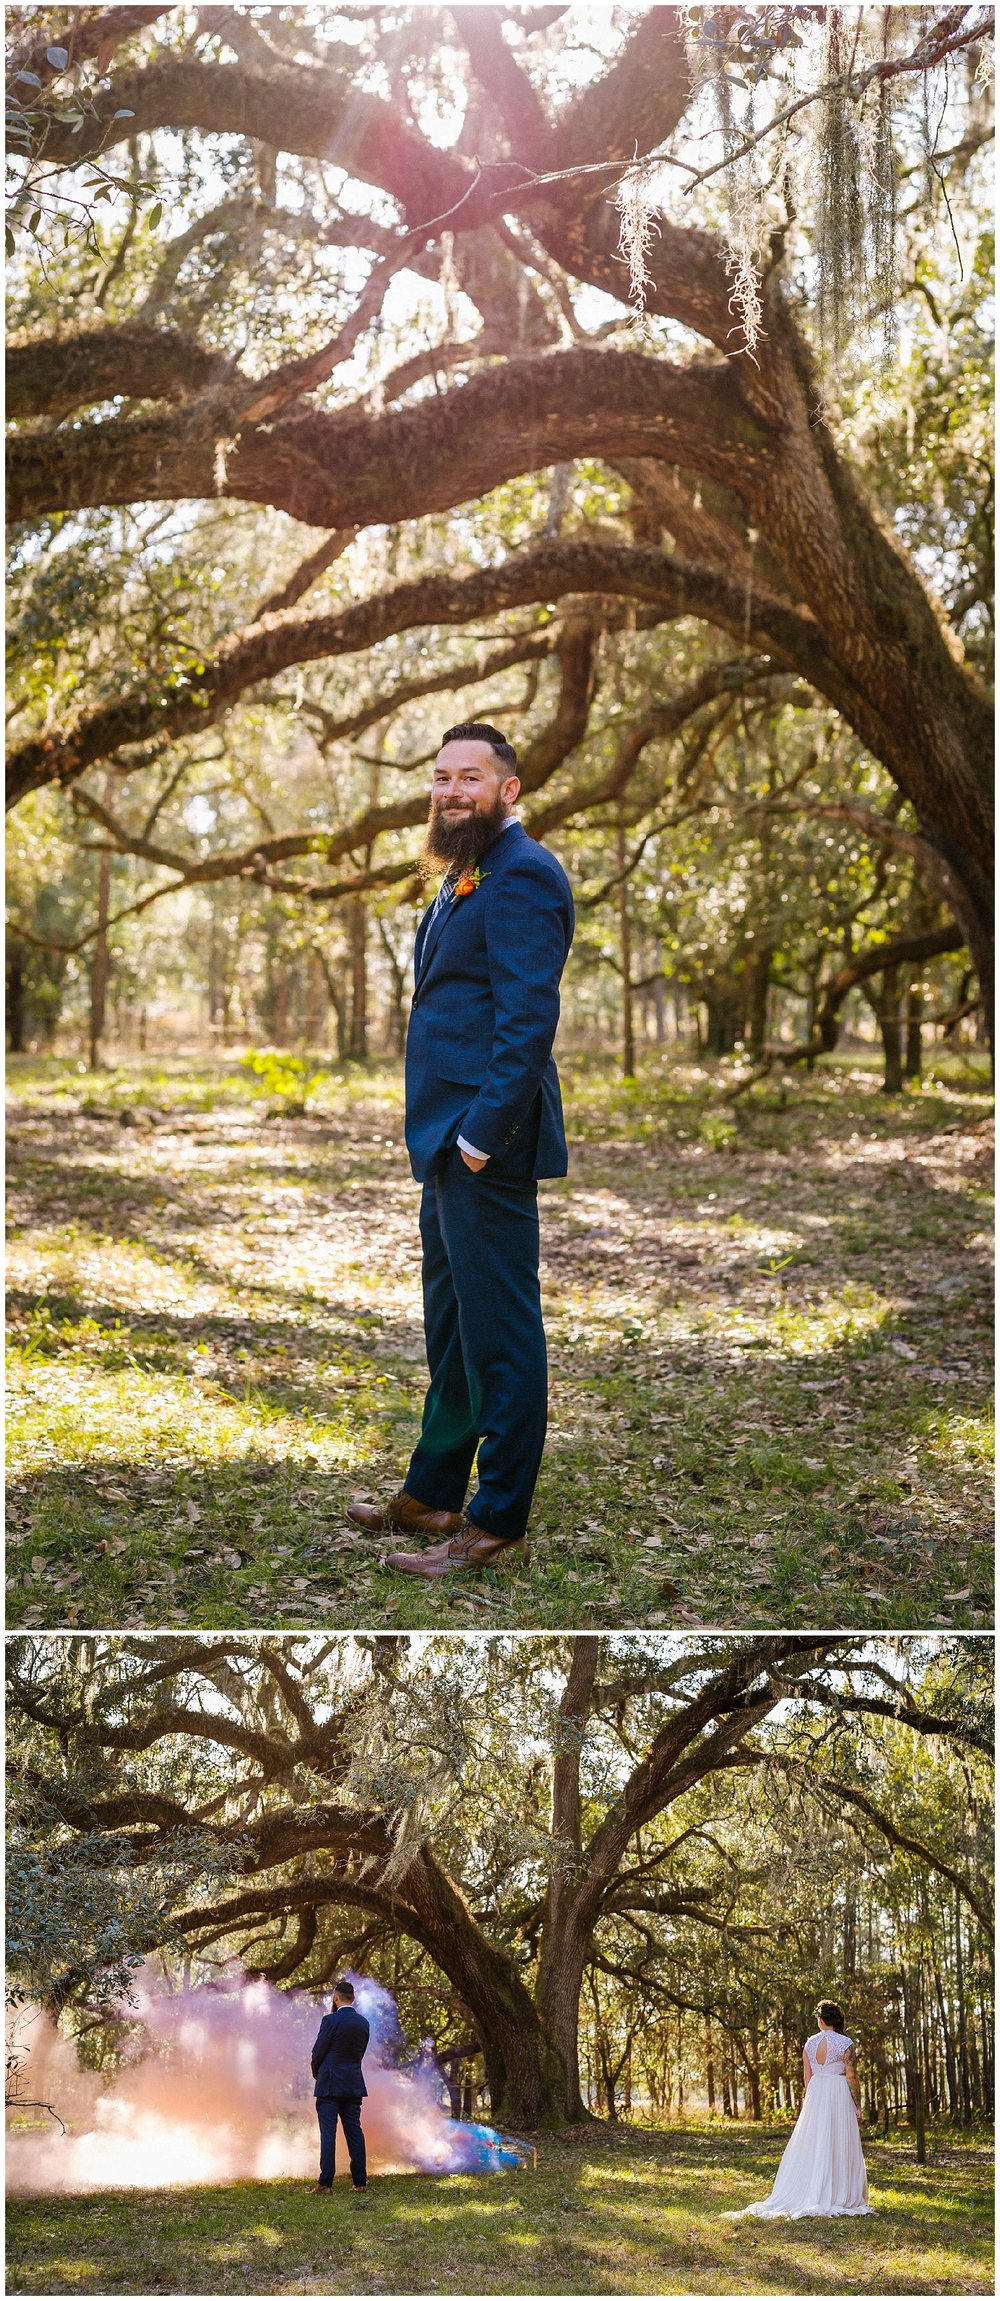 magical-outdoor-florida-wedding-smoke-bombs-flowers-crown-beard_0010.jpg